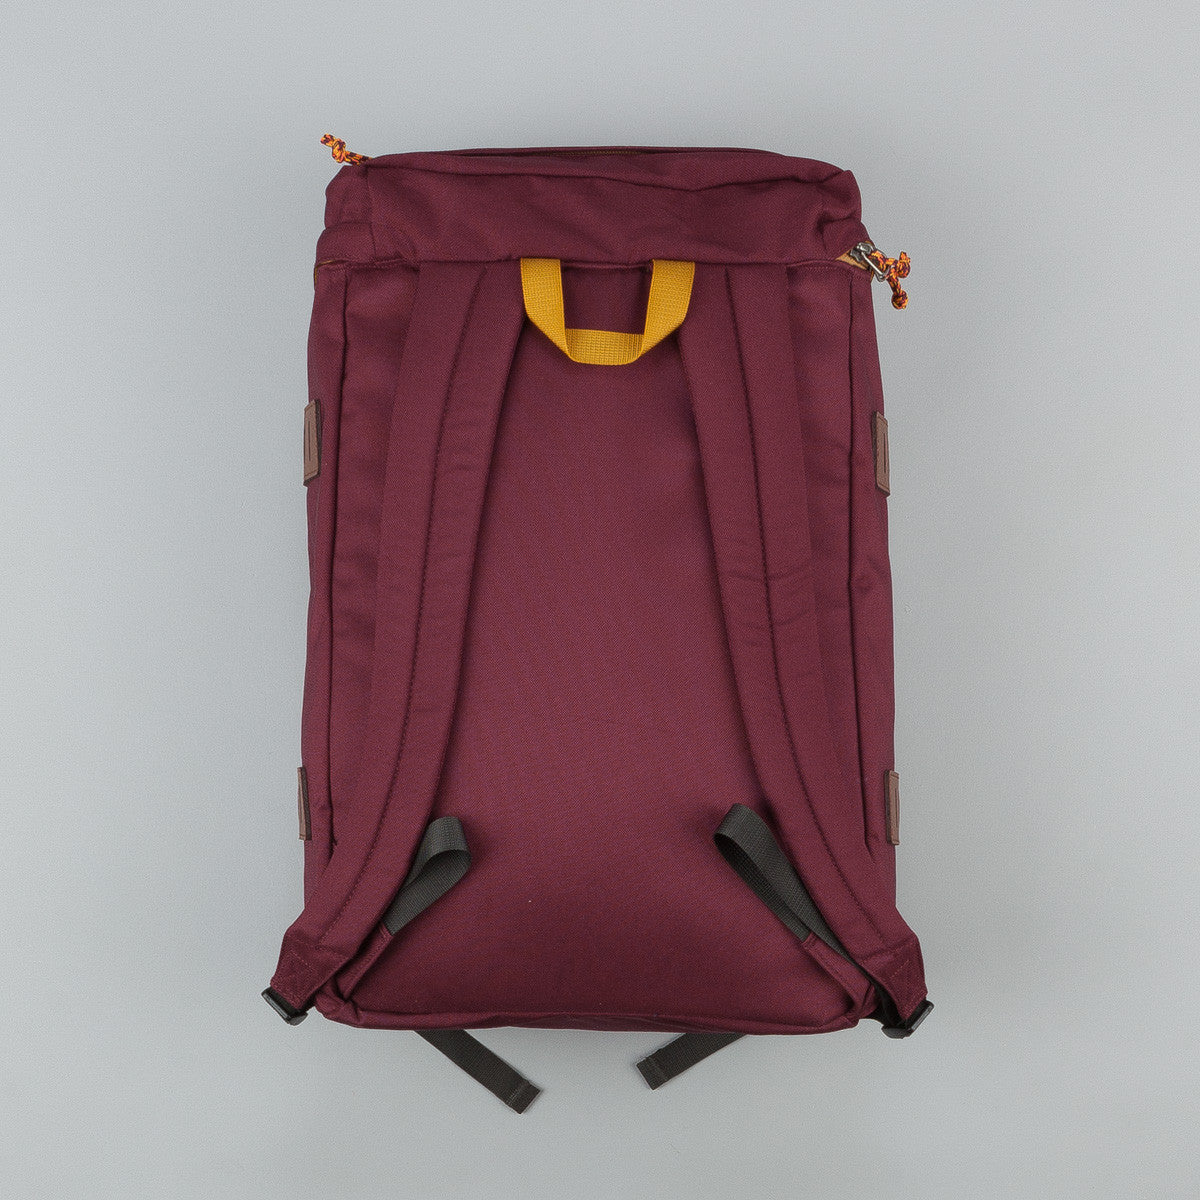 Patagonia Toromiro Backpack - Oxblood Red